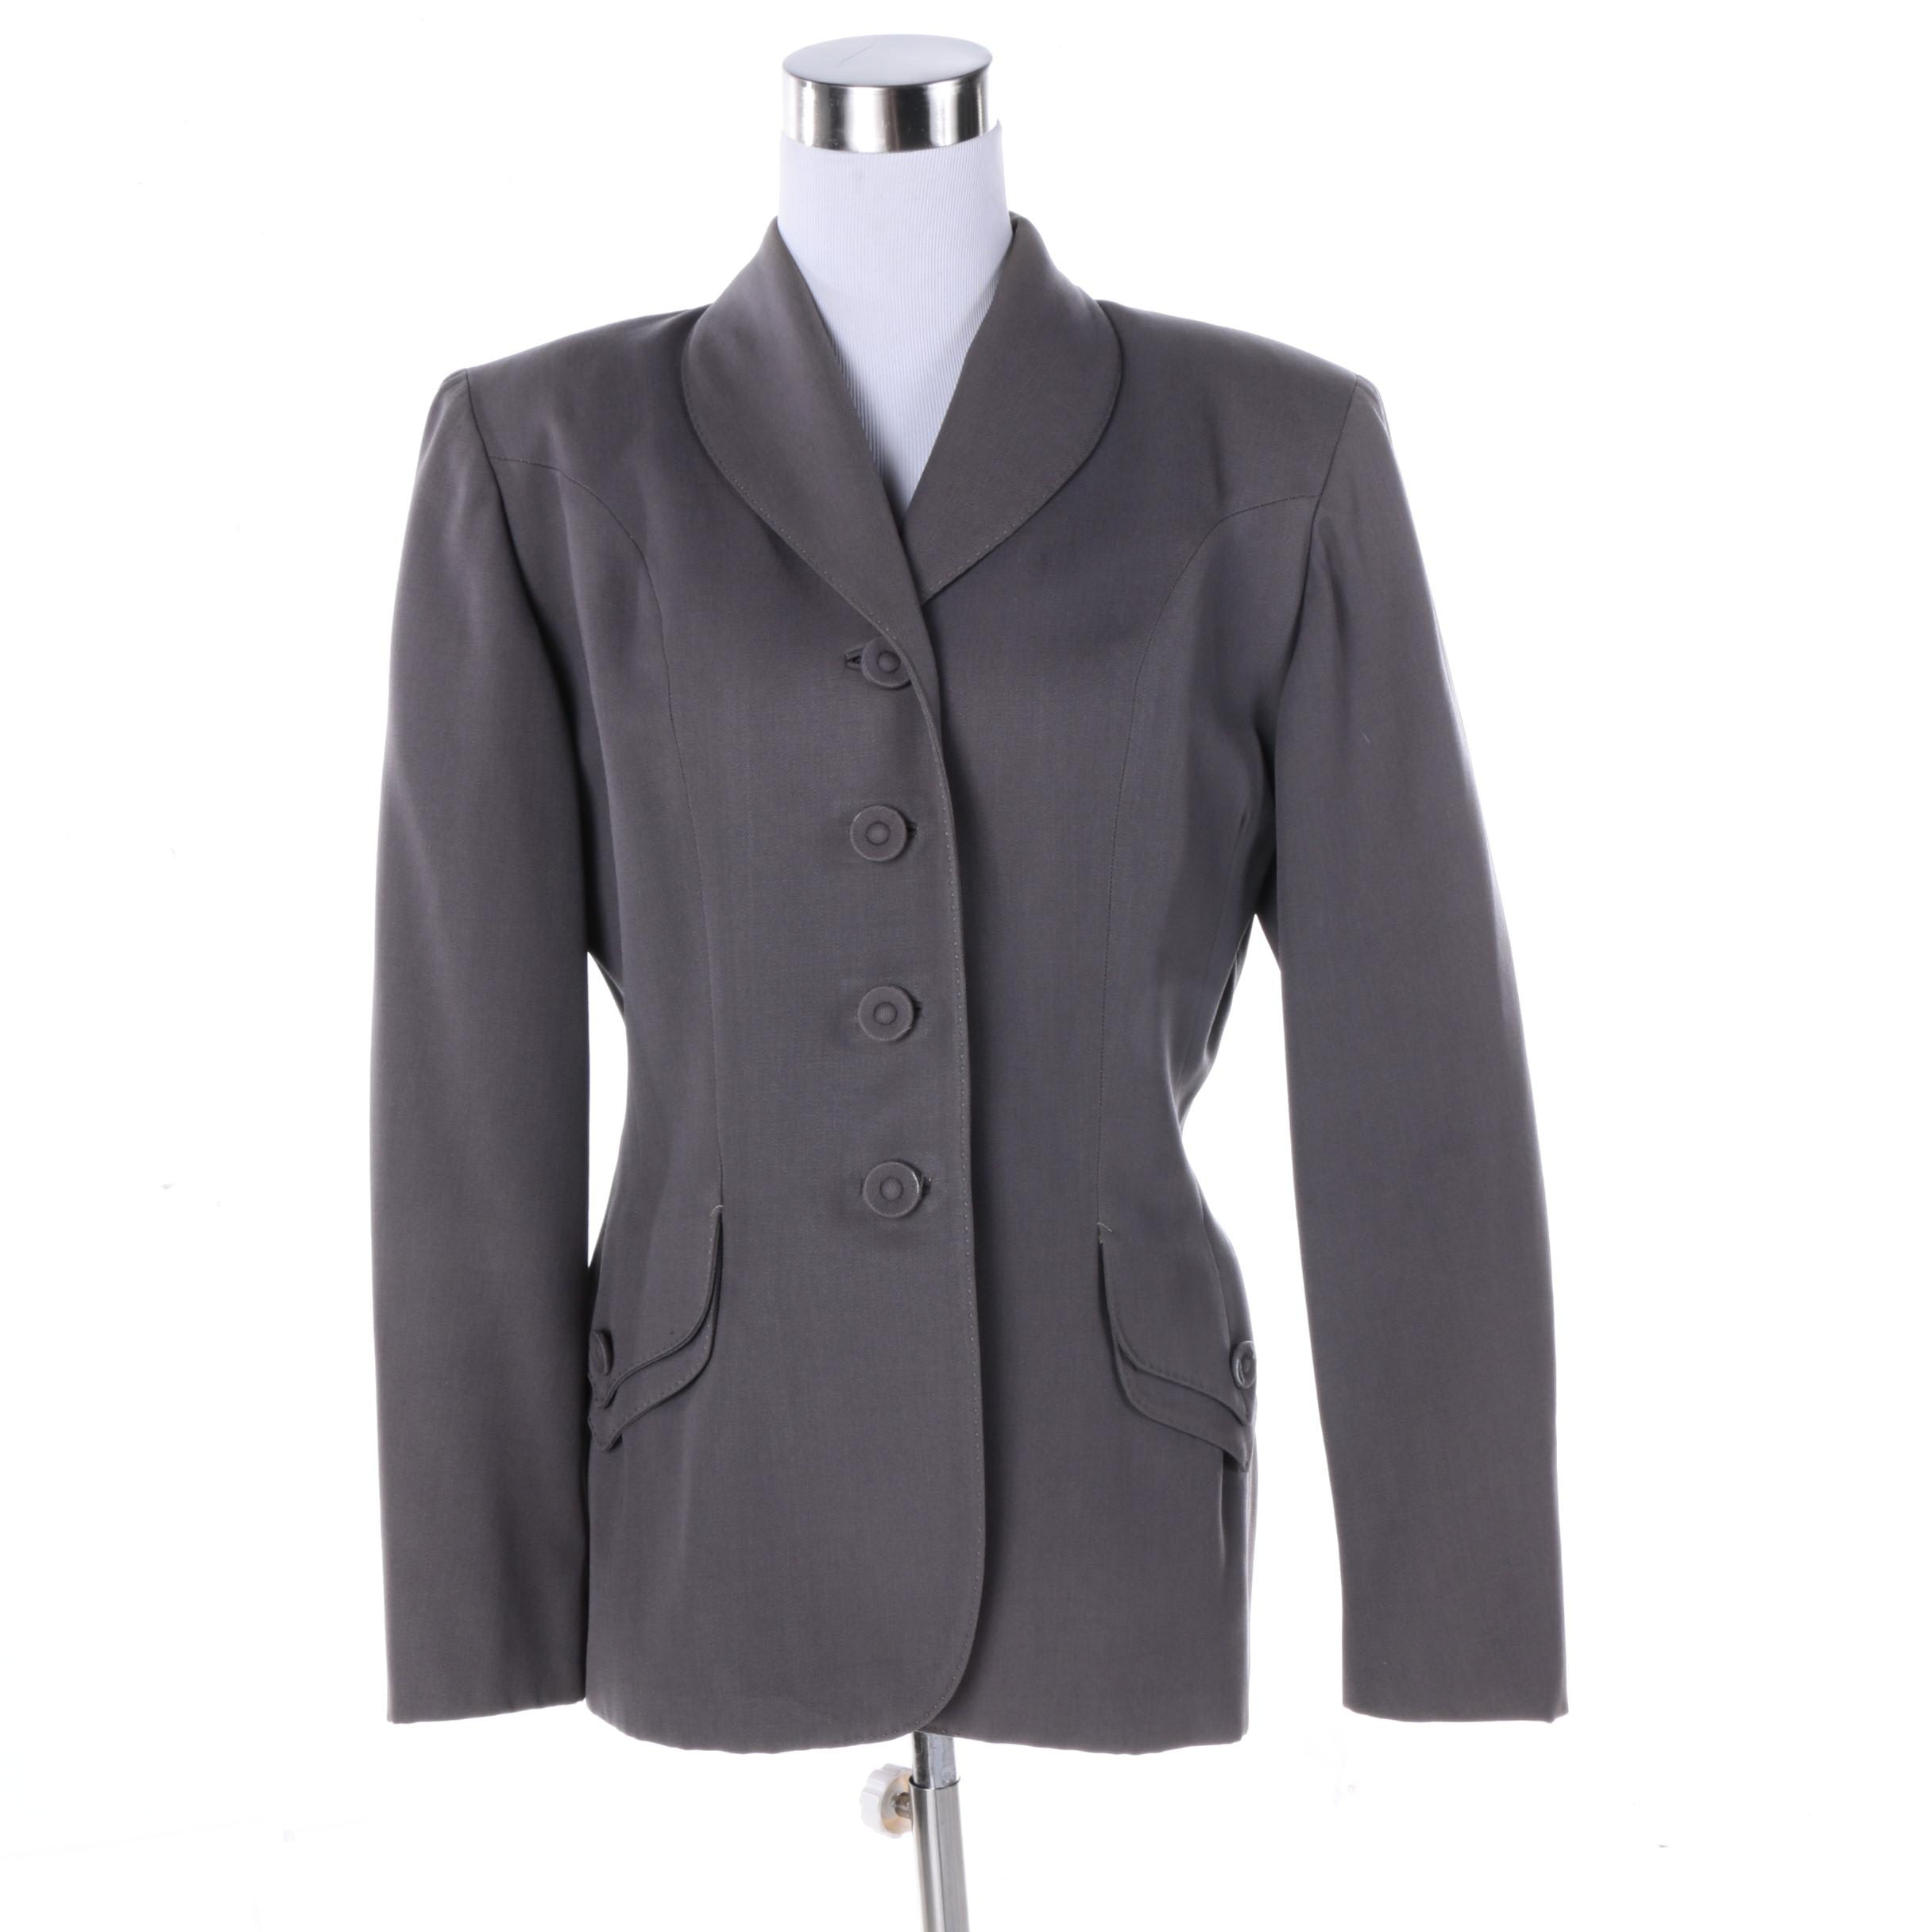 Women's Vintage John Taylor Grey Suit Jacket